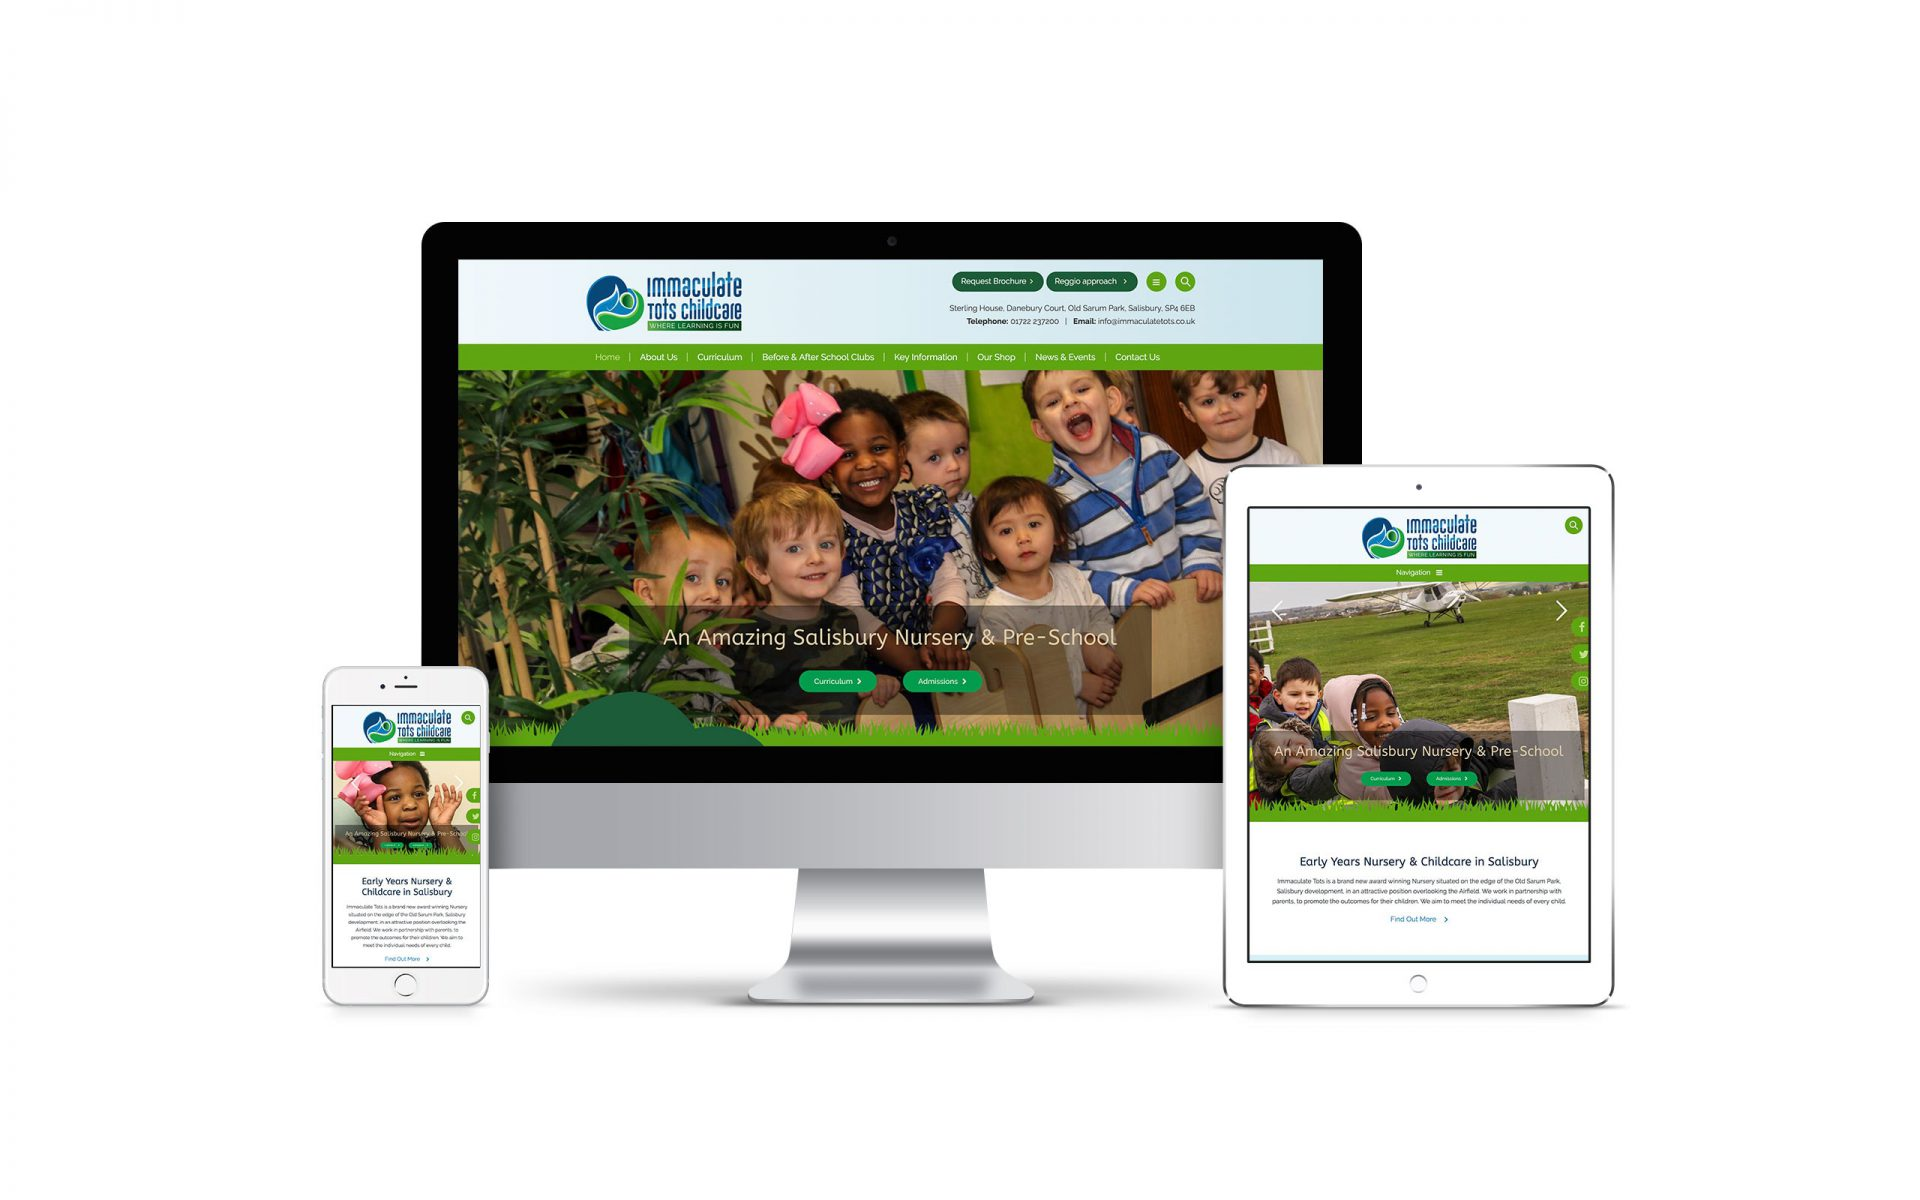 Website Design for Immaculate Tots Childcare